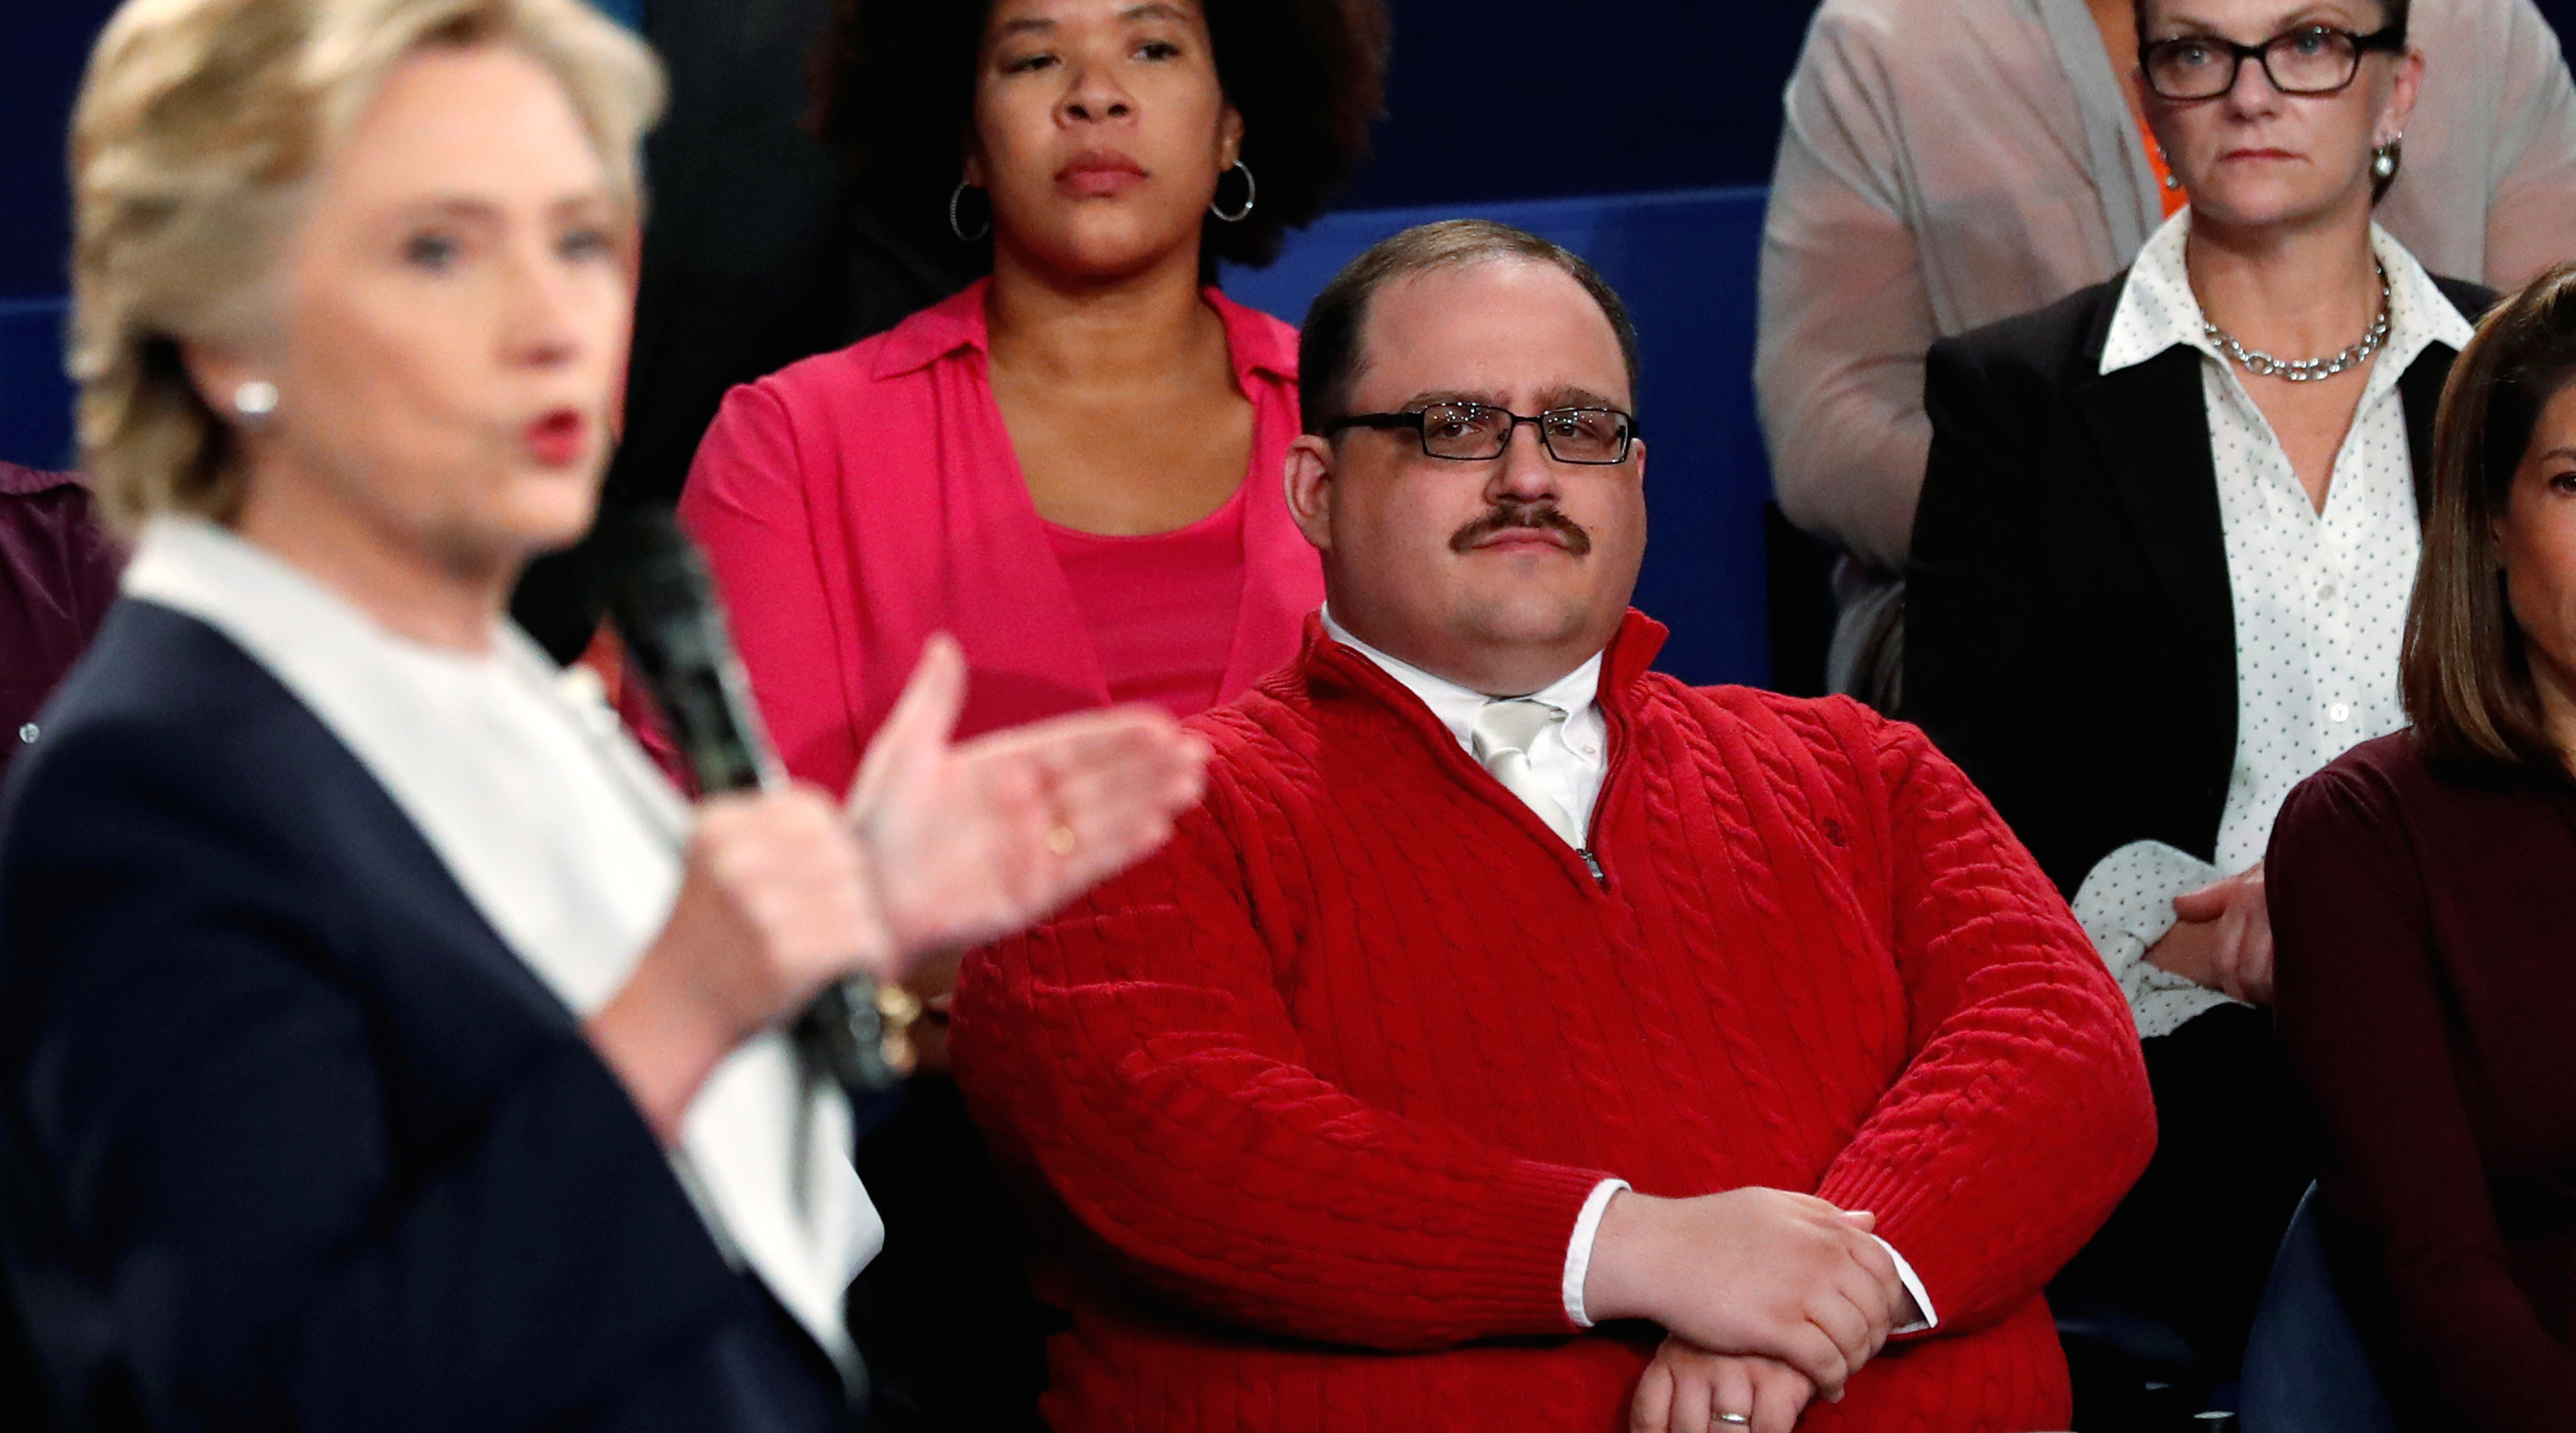 Ken Bone (R), an uncommitted voter who is a power plant employee from Belleville, Illinois, listens to Democratic nominee Hillary Clinton (L) during her presidential debate with Republican U.S. presidential nominee Donald Trump at Washington University in St. Louis, Missouri, U.S., October 9, 2016. Picture taken October 9, 2016.